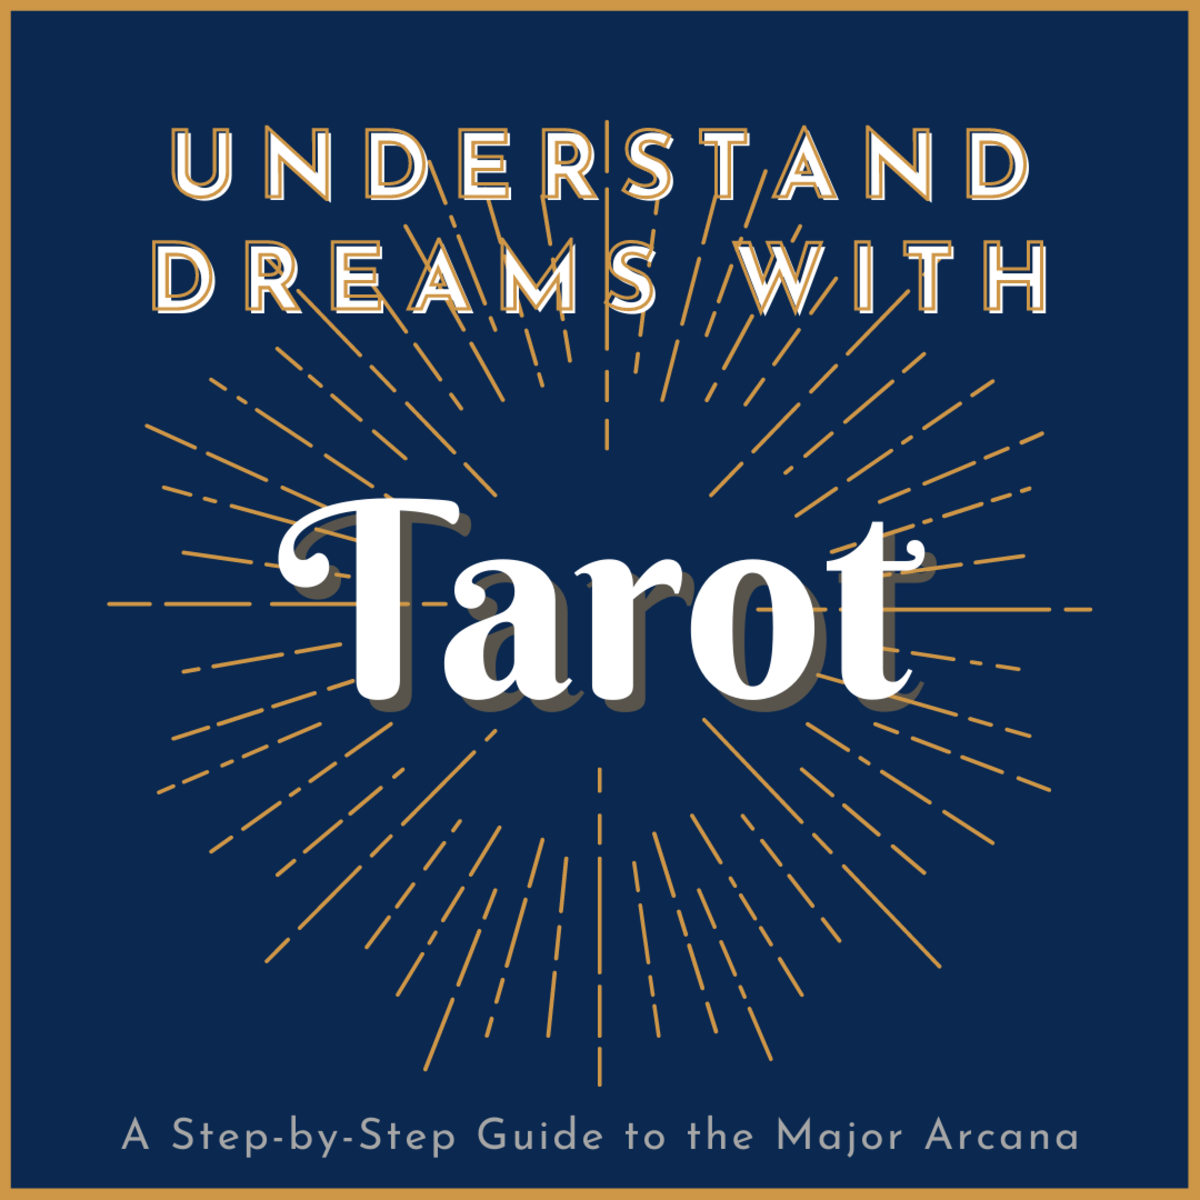 Dreams and the Tarot: Using Tarot Cards to Interpret the Meaning of Dreams